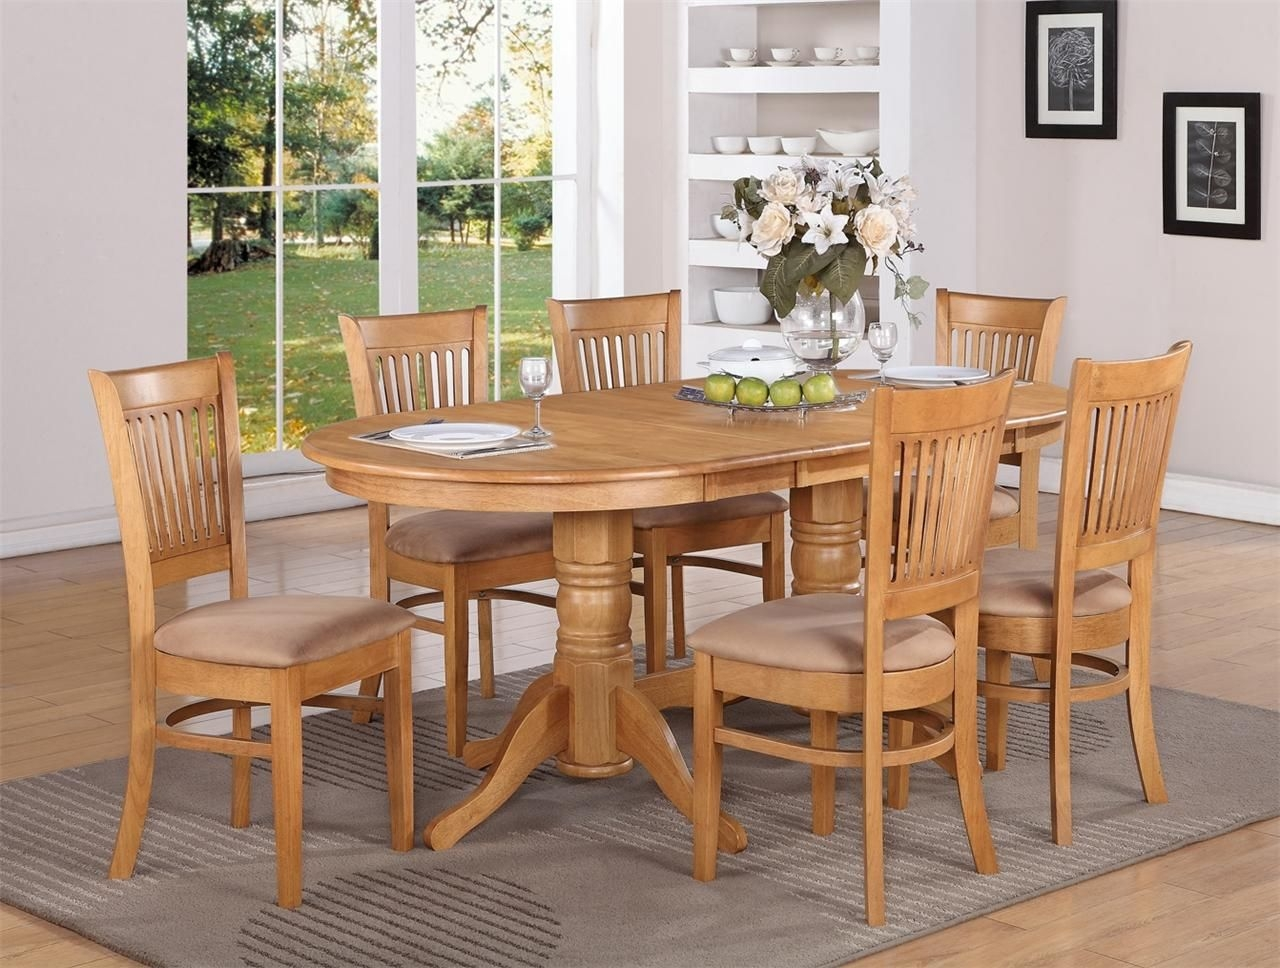 9 Pc Oval Dinette Dining Room Set Table  8 Upholstered Seat Chairs  Ebay